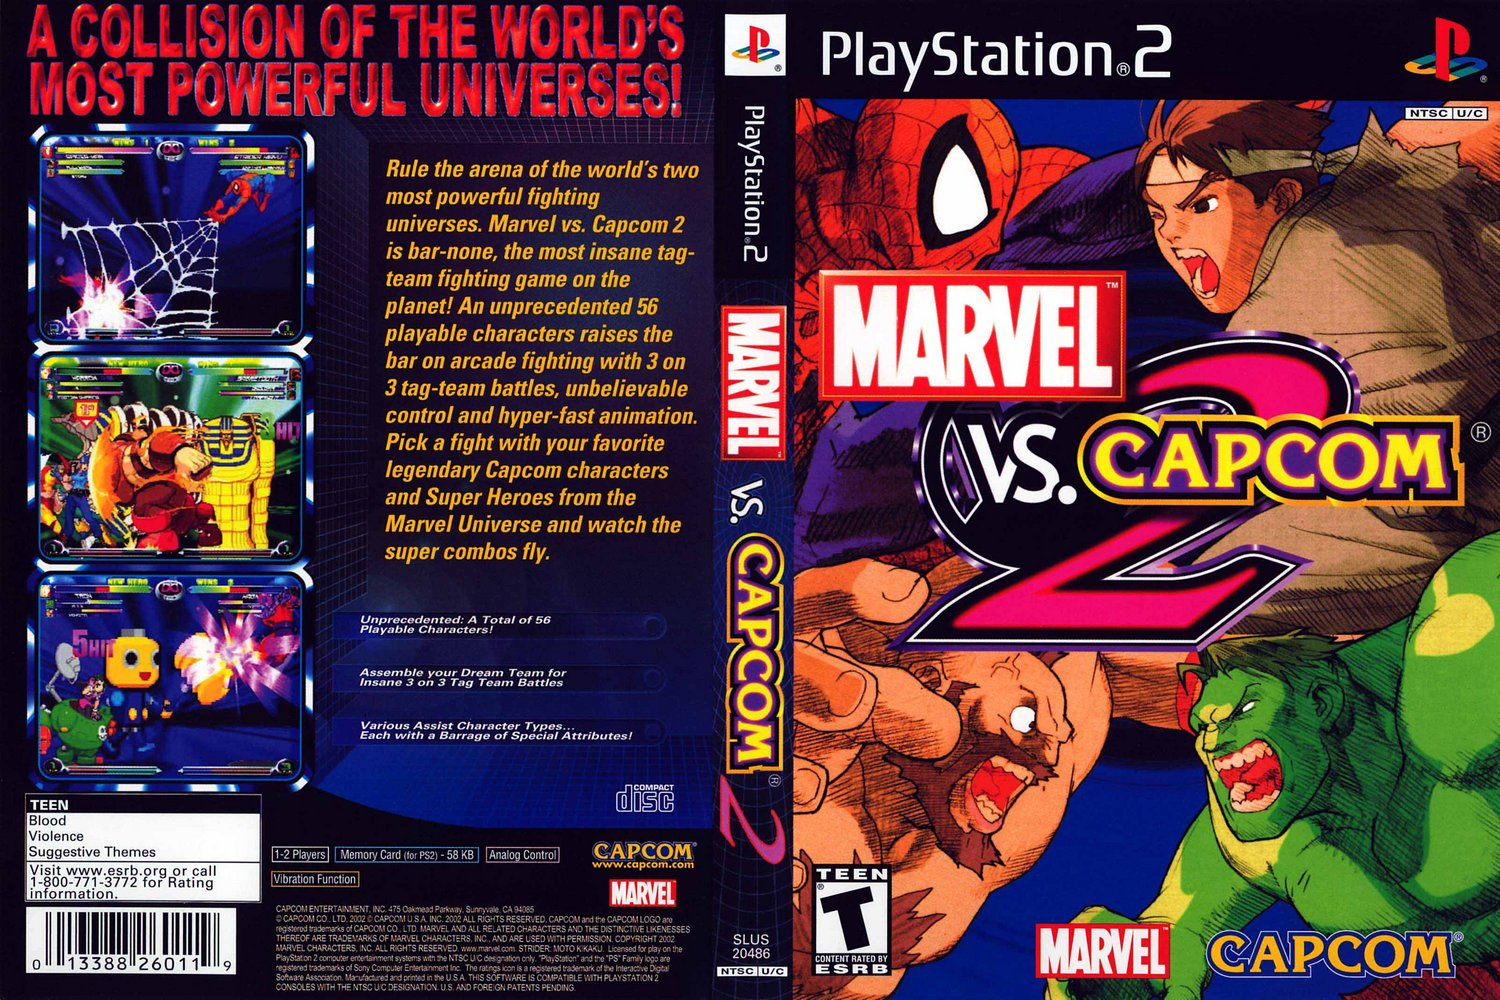 Game]Marvel vs. Capcom 2 - New Age of Heroes (Playstation 2)